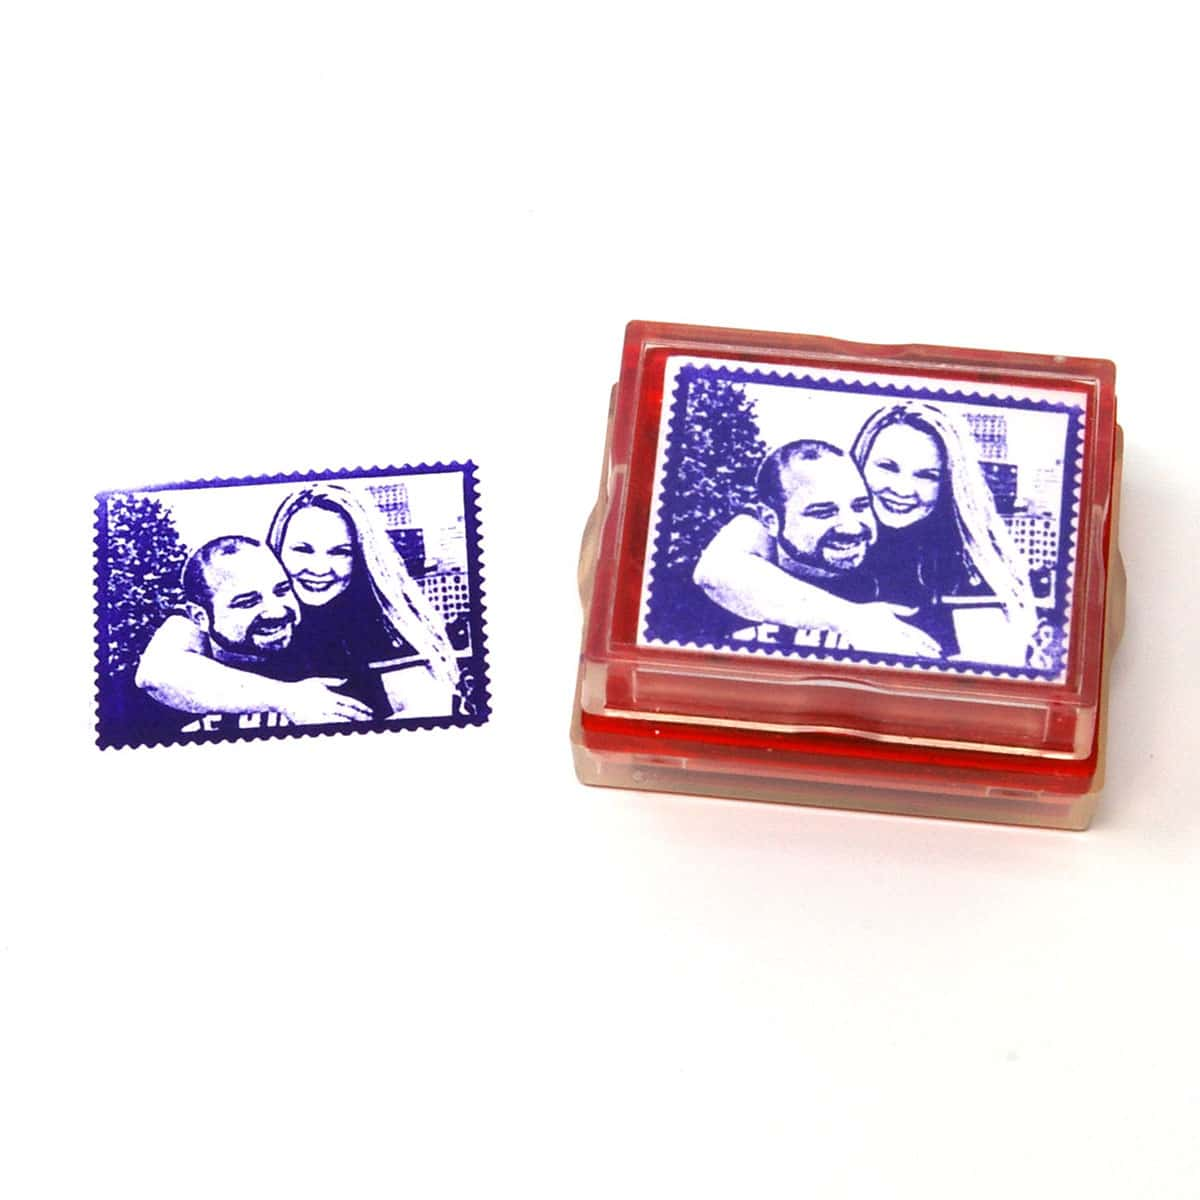 Postage rubber stamp